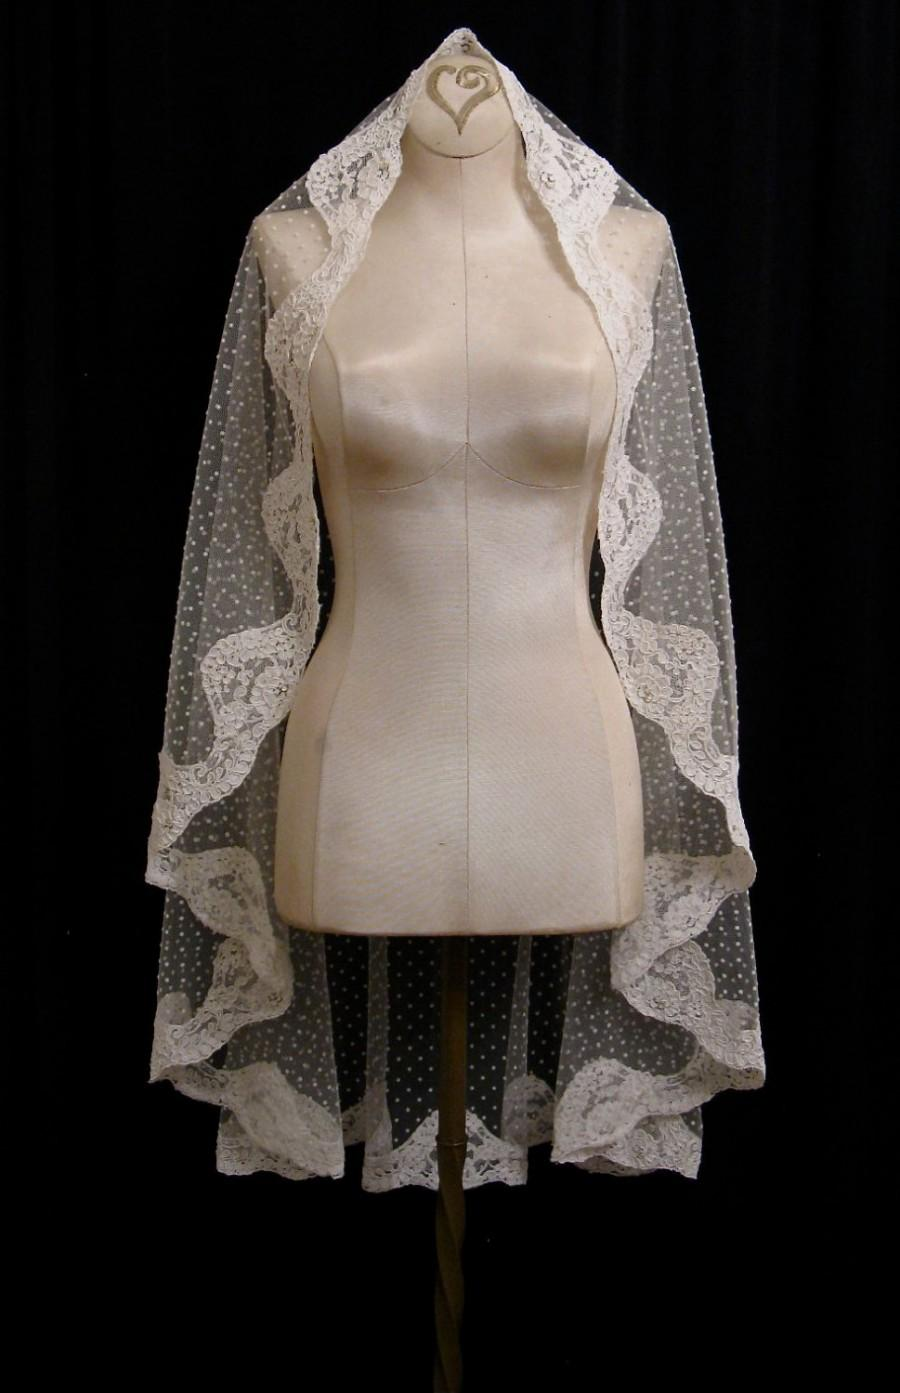 Wedding - Ivory Swiss Dot Mantilla Veil With Light Ivory Alencon Lace And Crystals